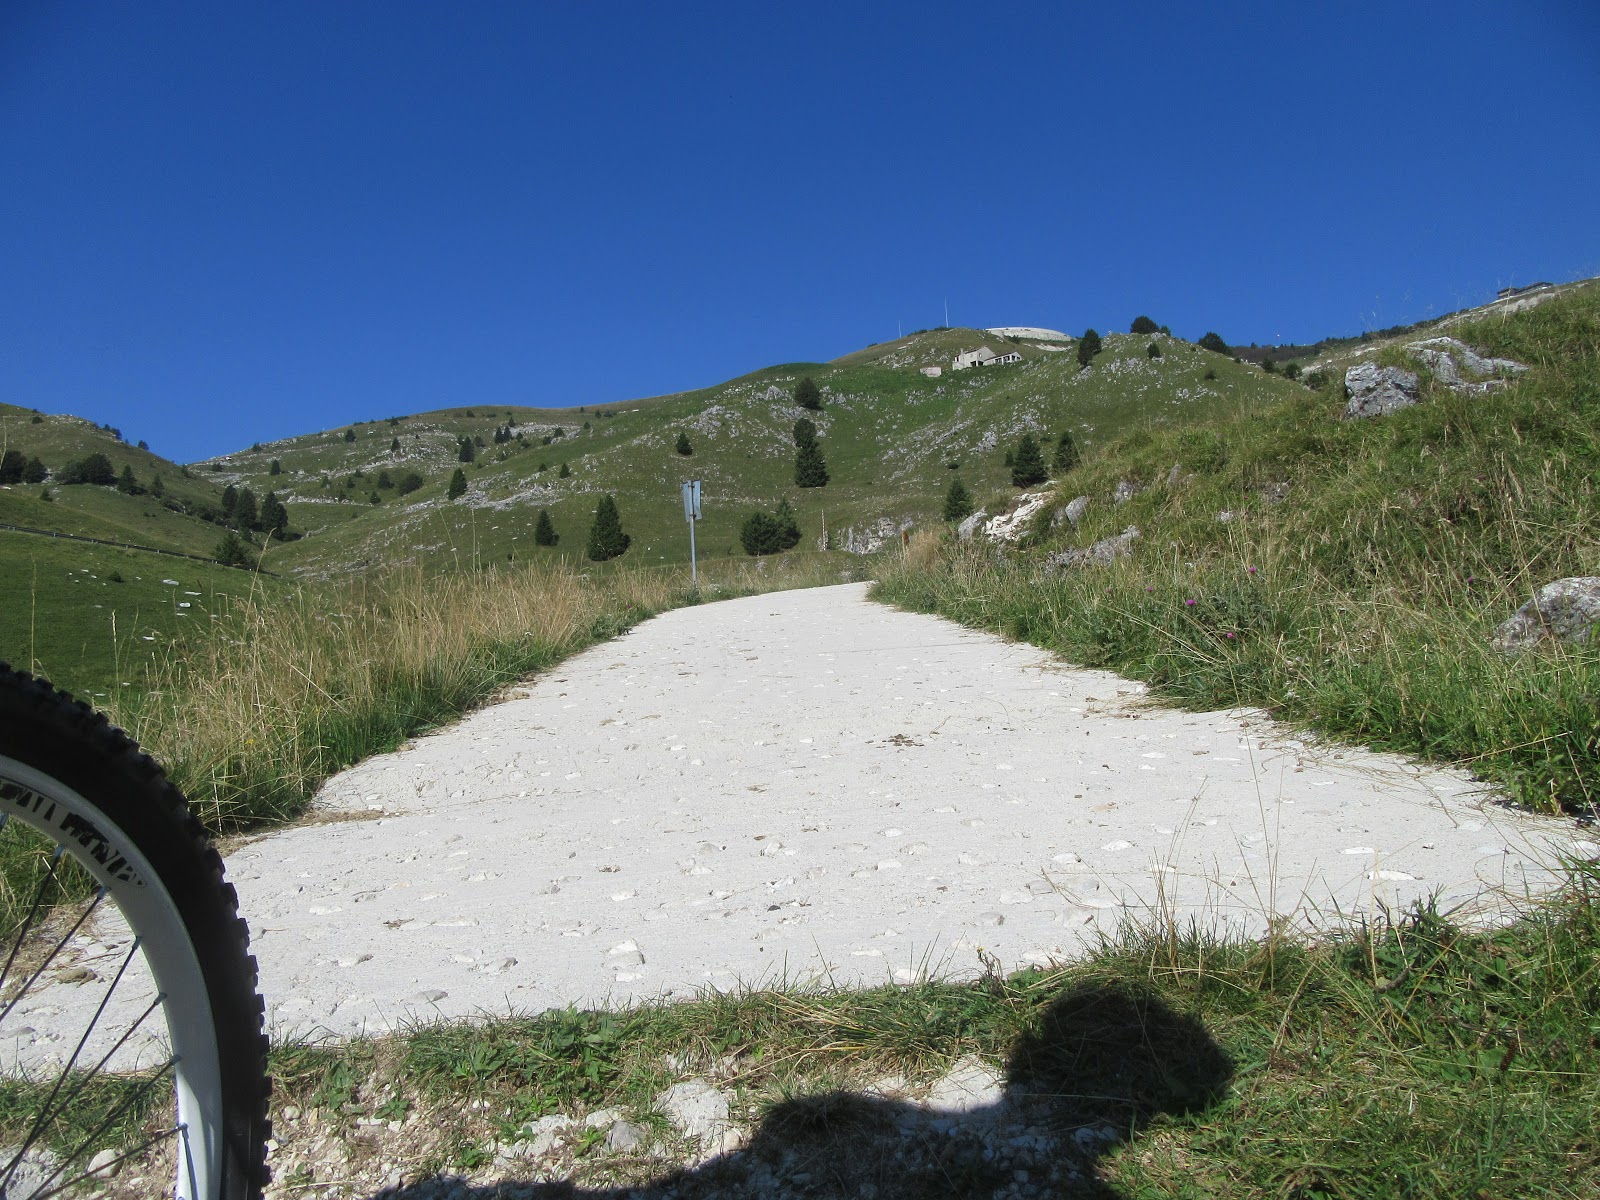 Climbing Monte Grappa from Crespano by bike - start of pavement